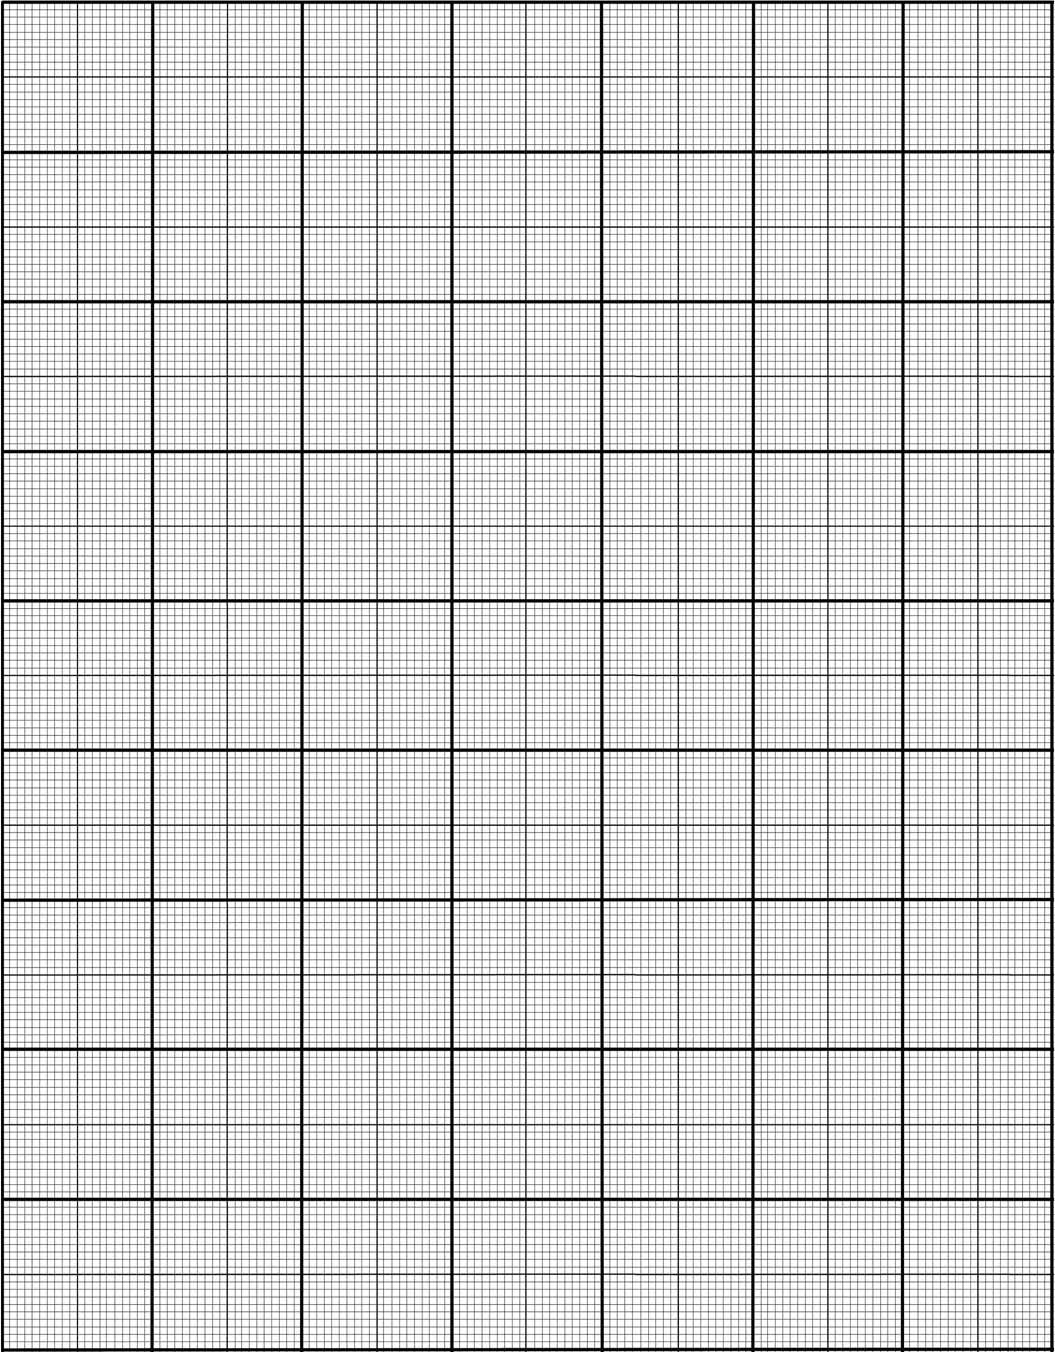 Printable Graph Paper HD Wallpapers Download Free Printable Graph Paper  Tumblr   Pinterest Hd Wallpapers  Download Graph Paper For Word